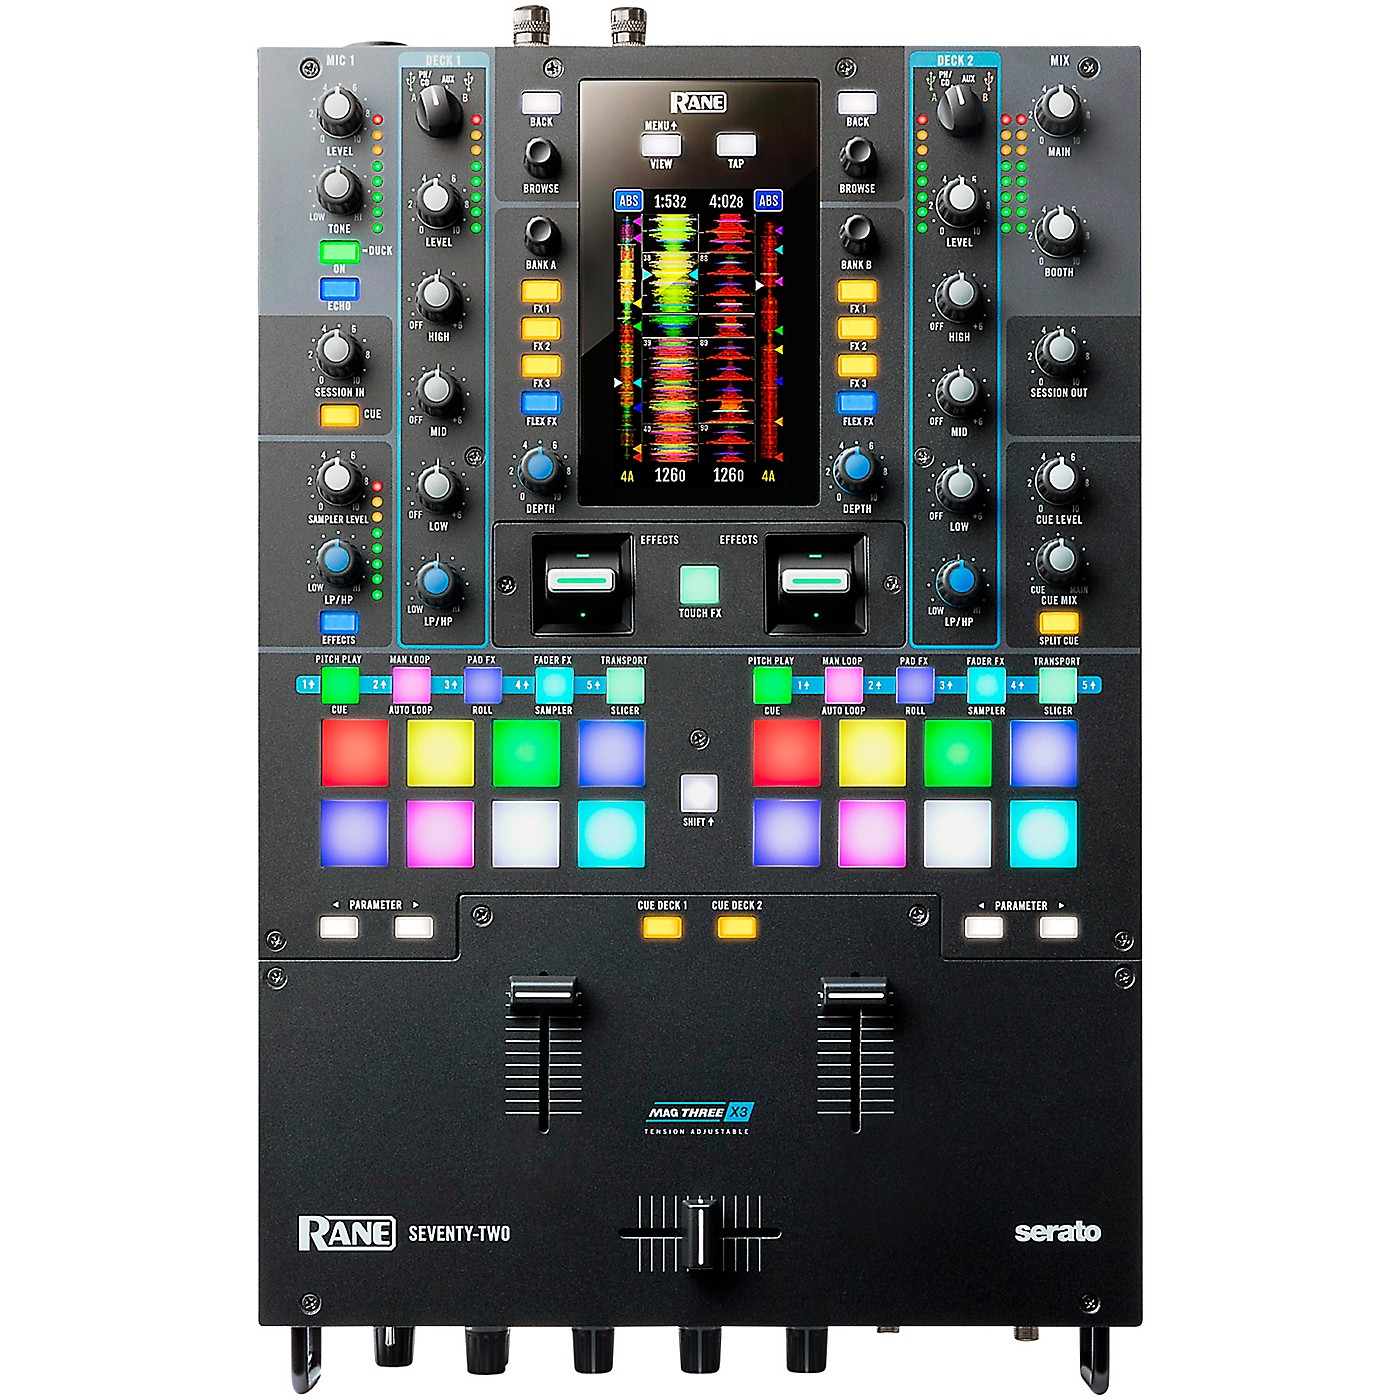 RANE DJ SEVENTY-TWO Battle-Ready 2-channel DJ Mixer with Touchscreen and Serato DJ thumbnail